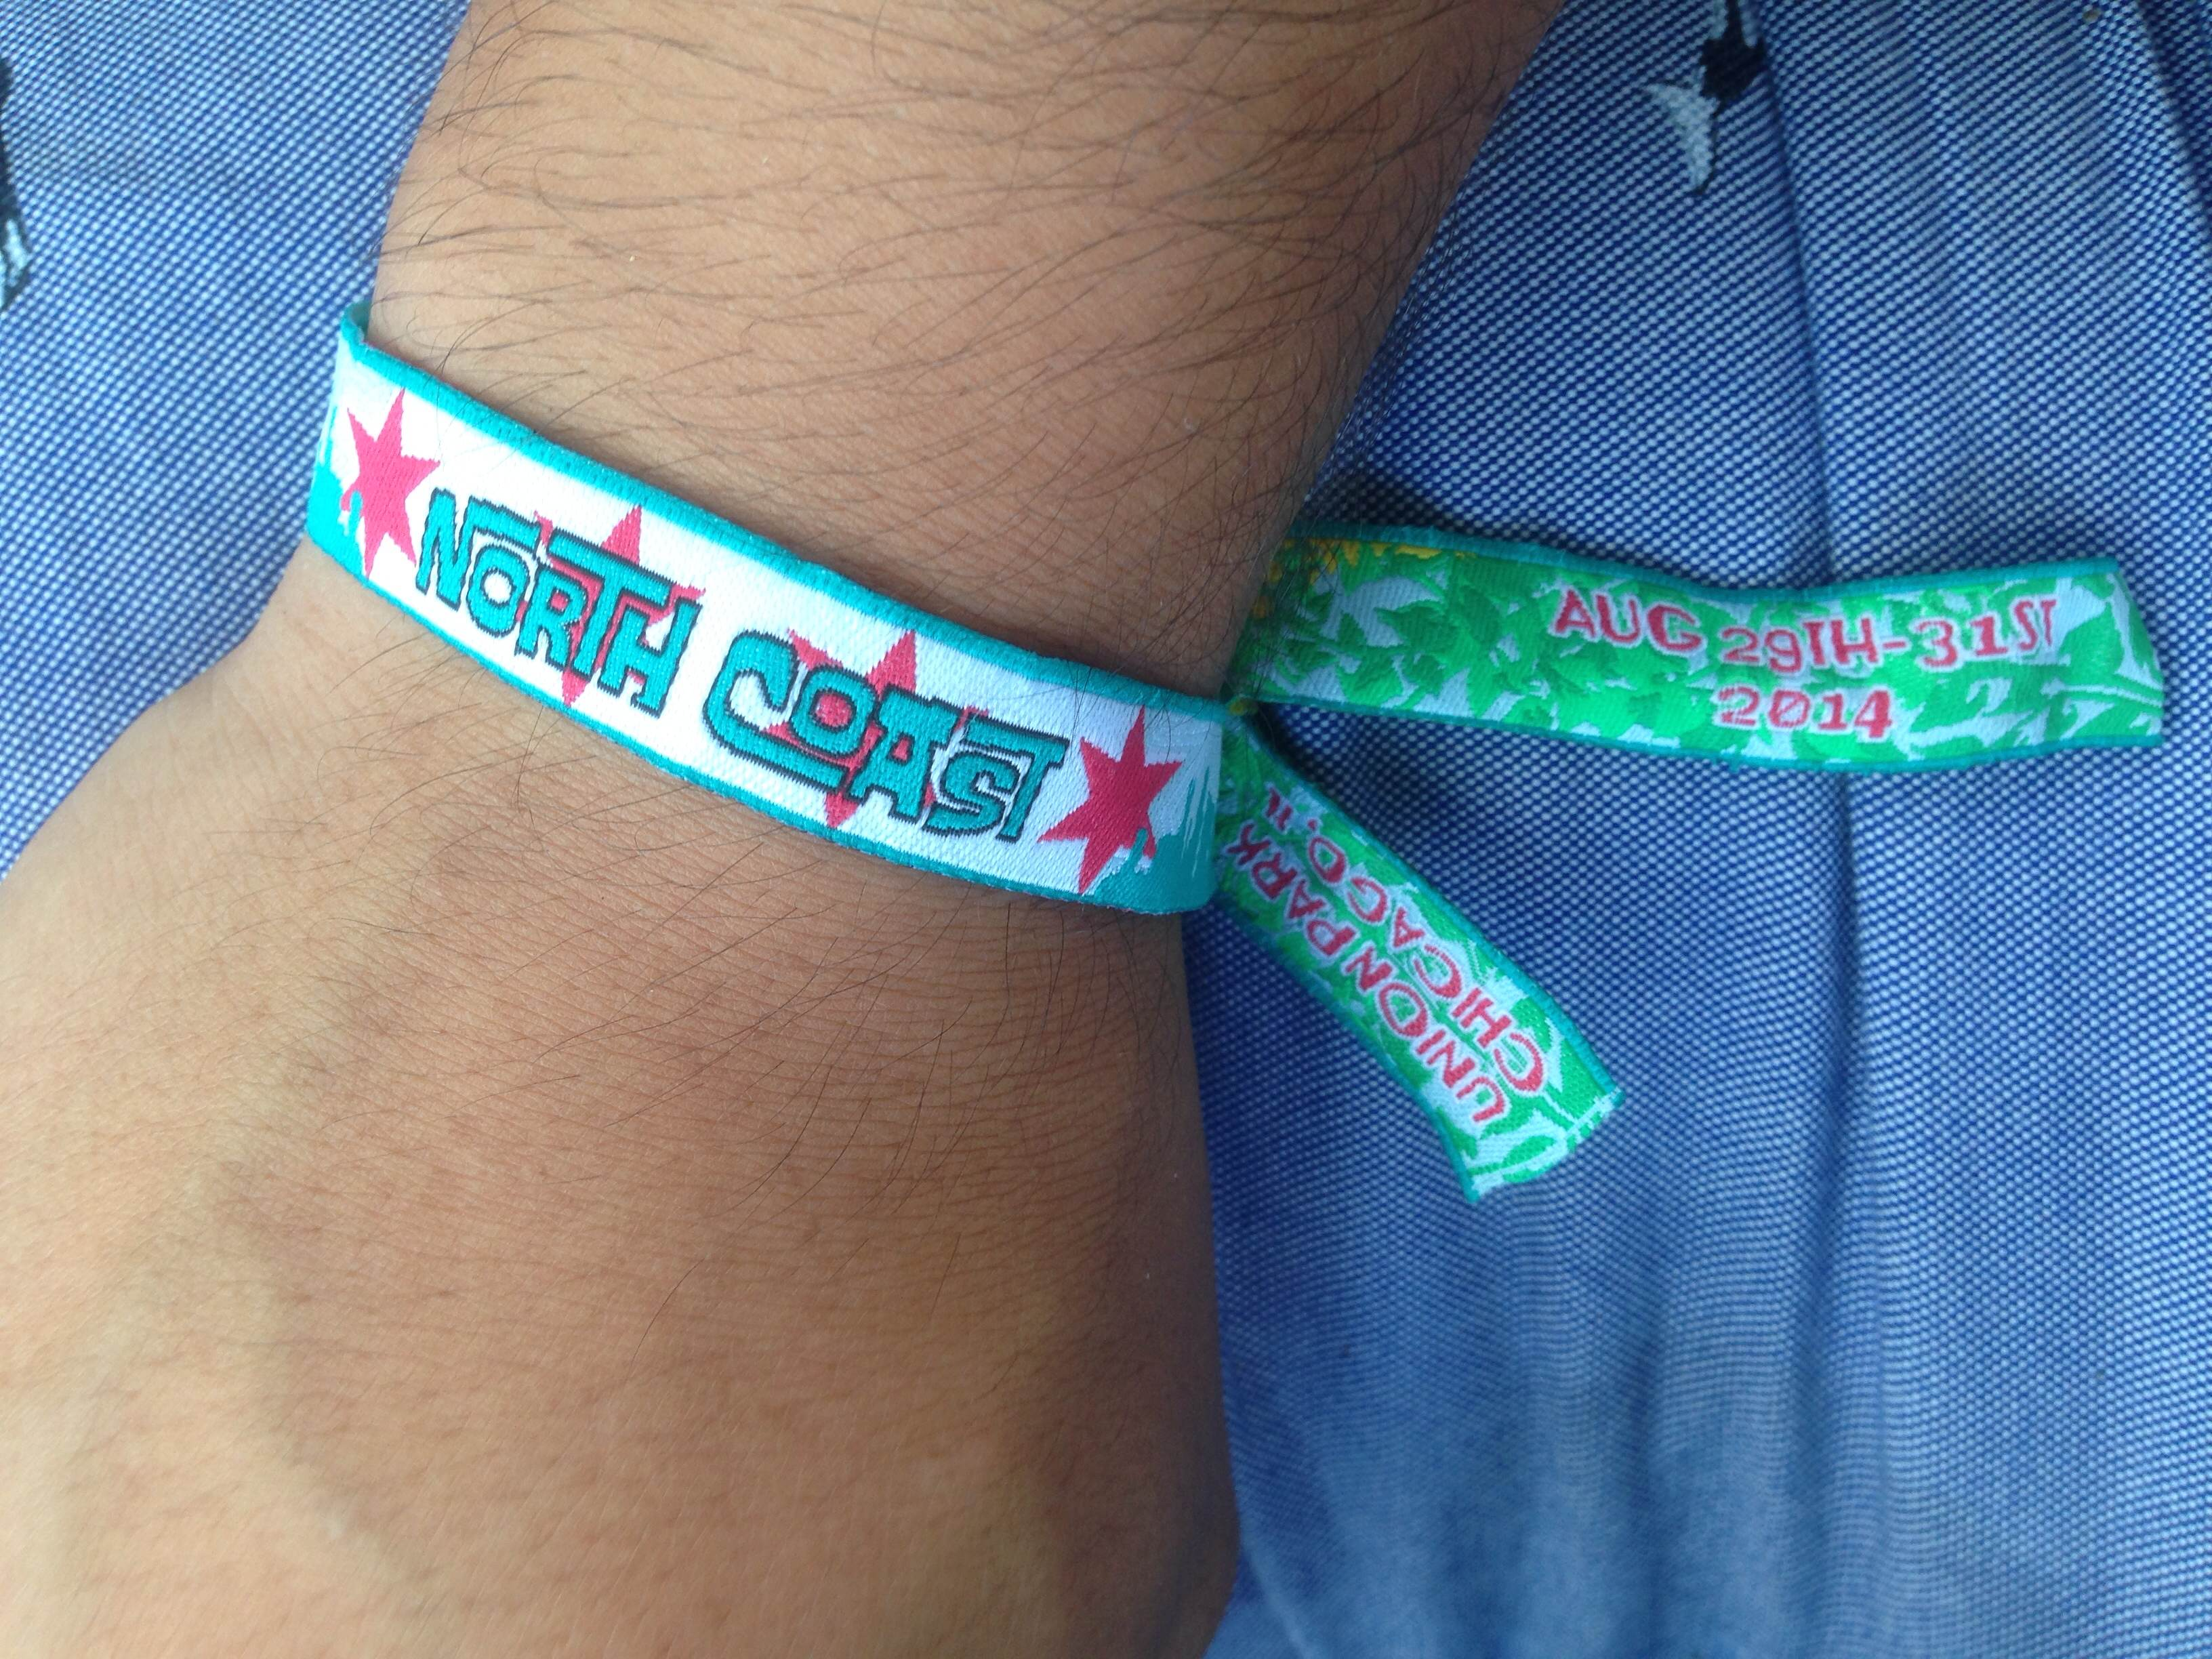 photo festival ticket day chimmyville wristband to bracelet reading obligatory music